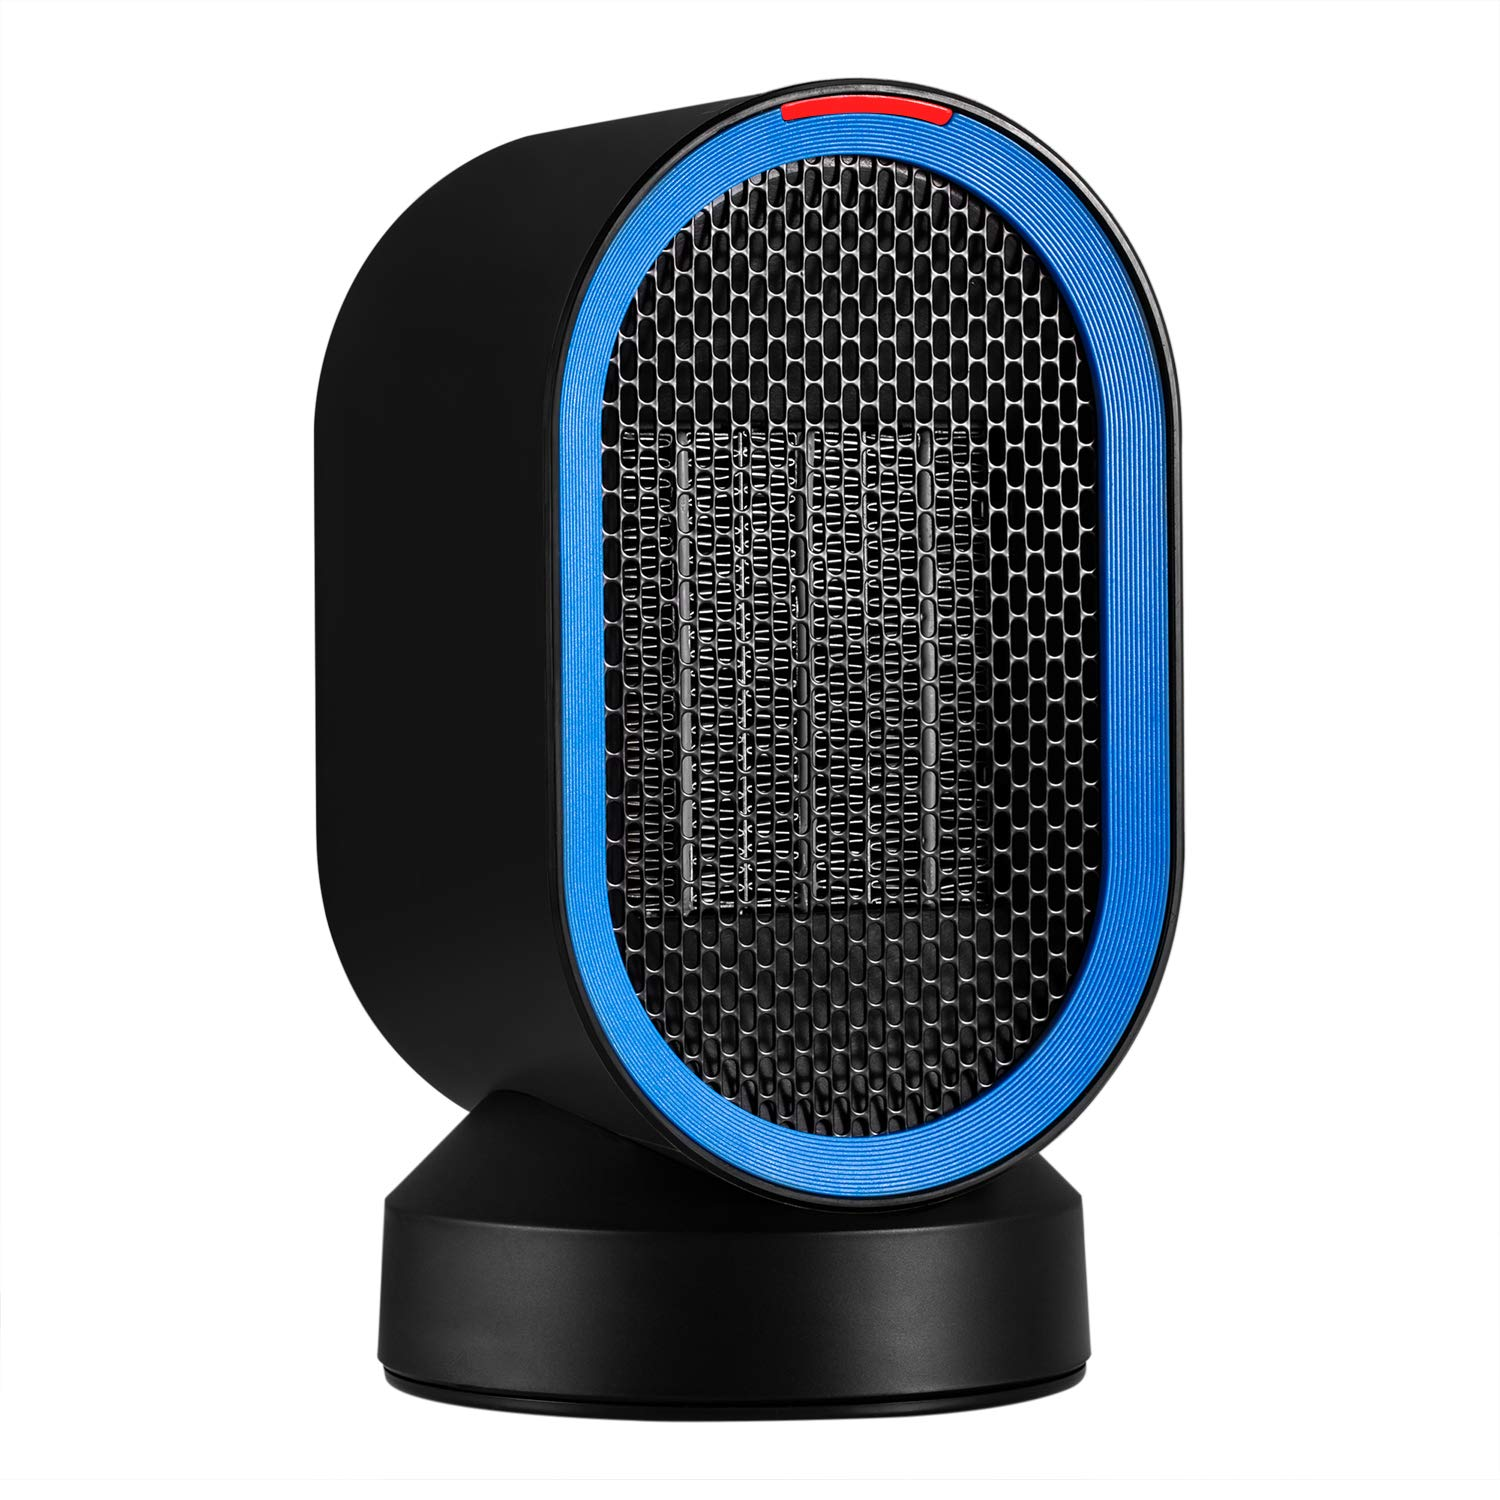 Personal Heater, AIVANT 600W PTC Ceramic Heater, Oscillating Function Portable Space Heater with Hot and Natural Wind for Office Desktop, Home, Dorm Room (Blue black)